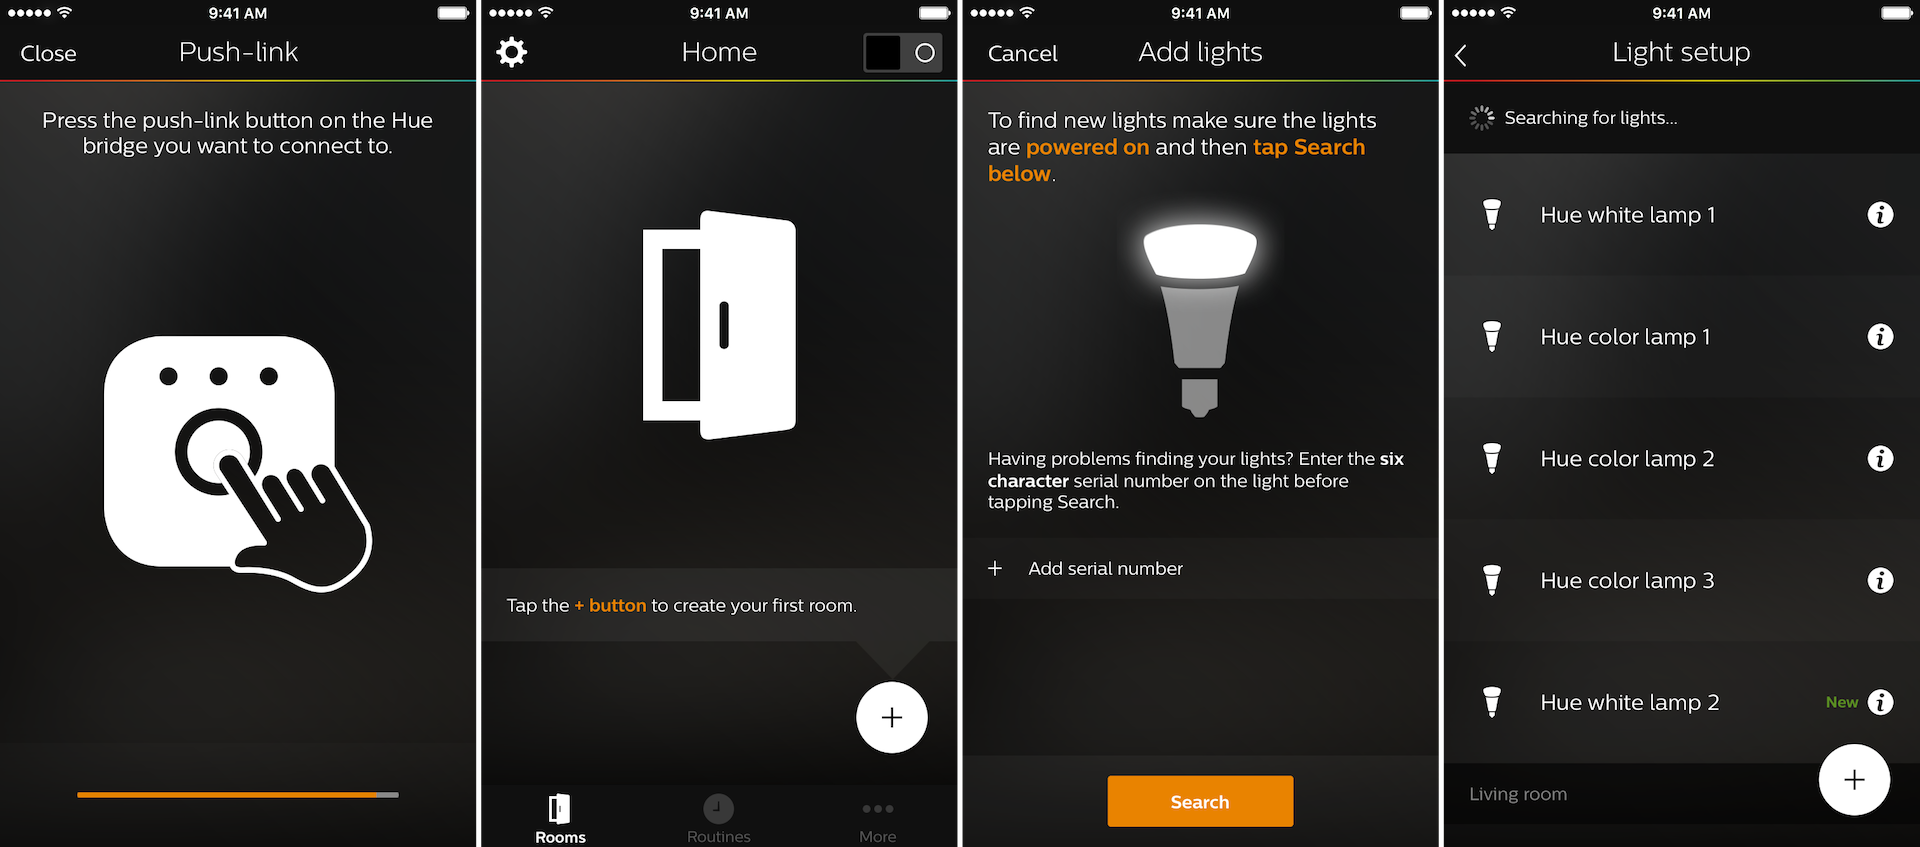 philips-hue-app-bridge-push-link-button-creating-room-and-adding-lights